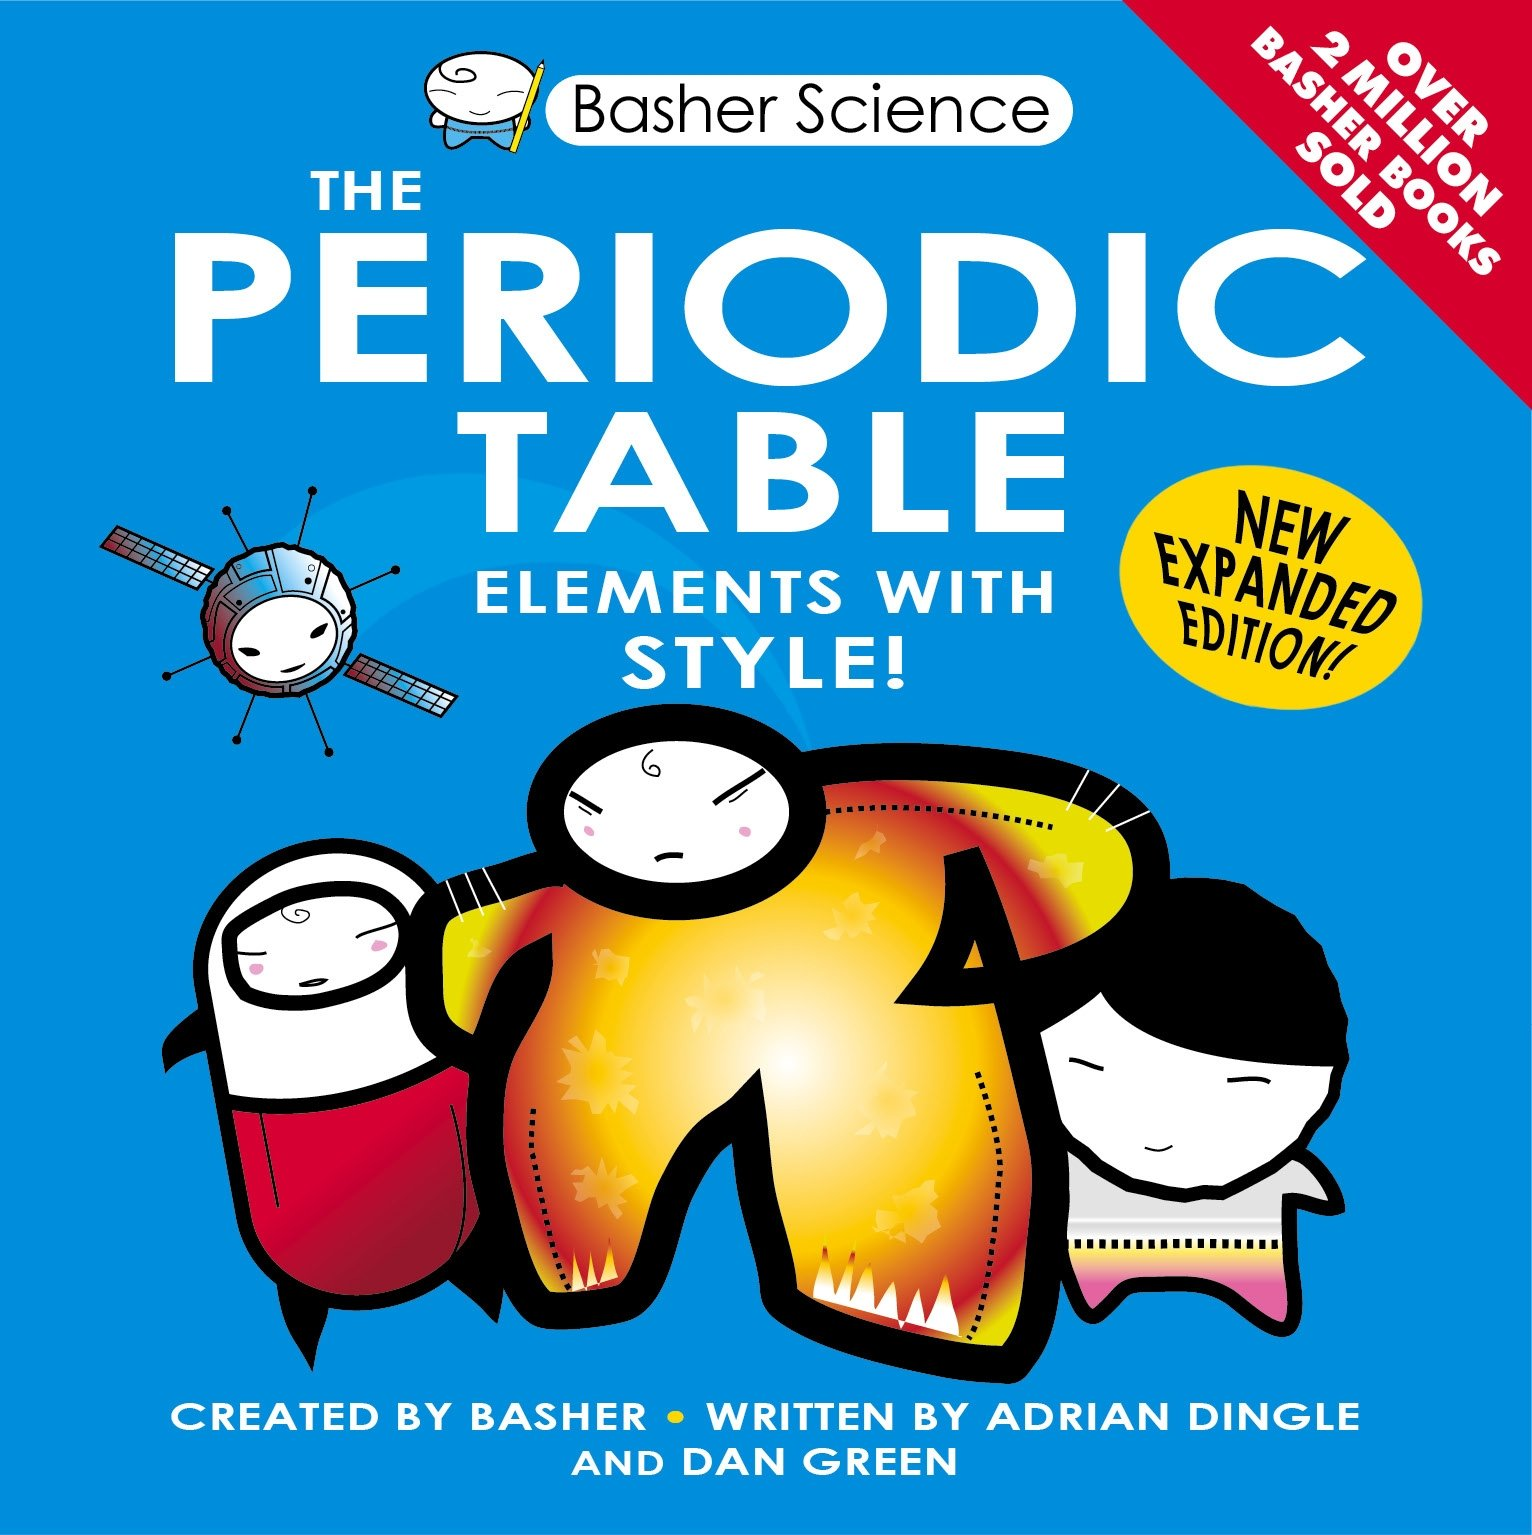 Buy basher science the periodic table book online at low prices buy basher science the periodic table book online at low prices in india basher science the periodic table reviews ratings amazon gamestrikefo Images